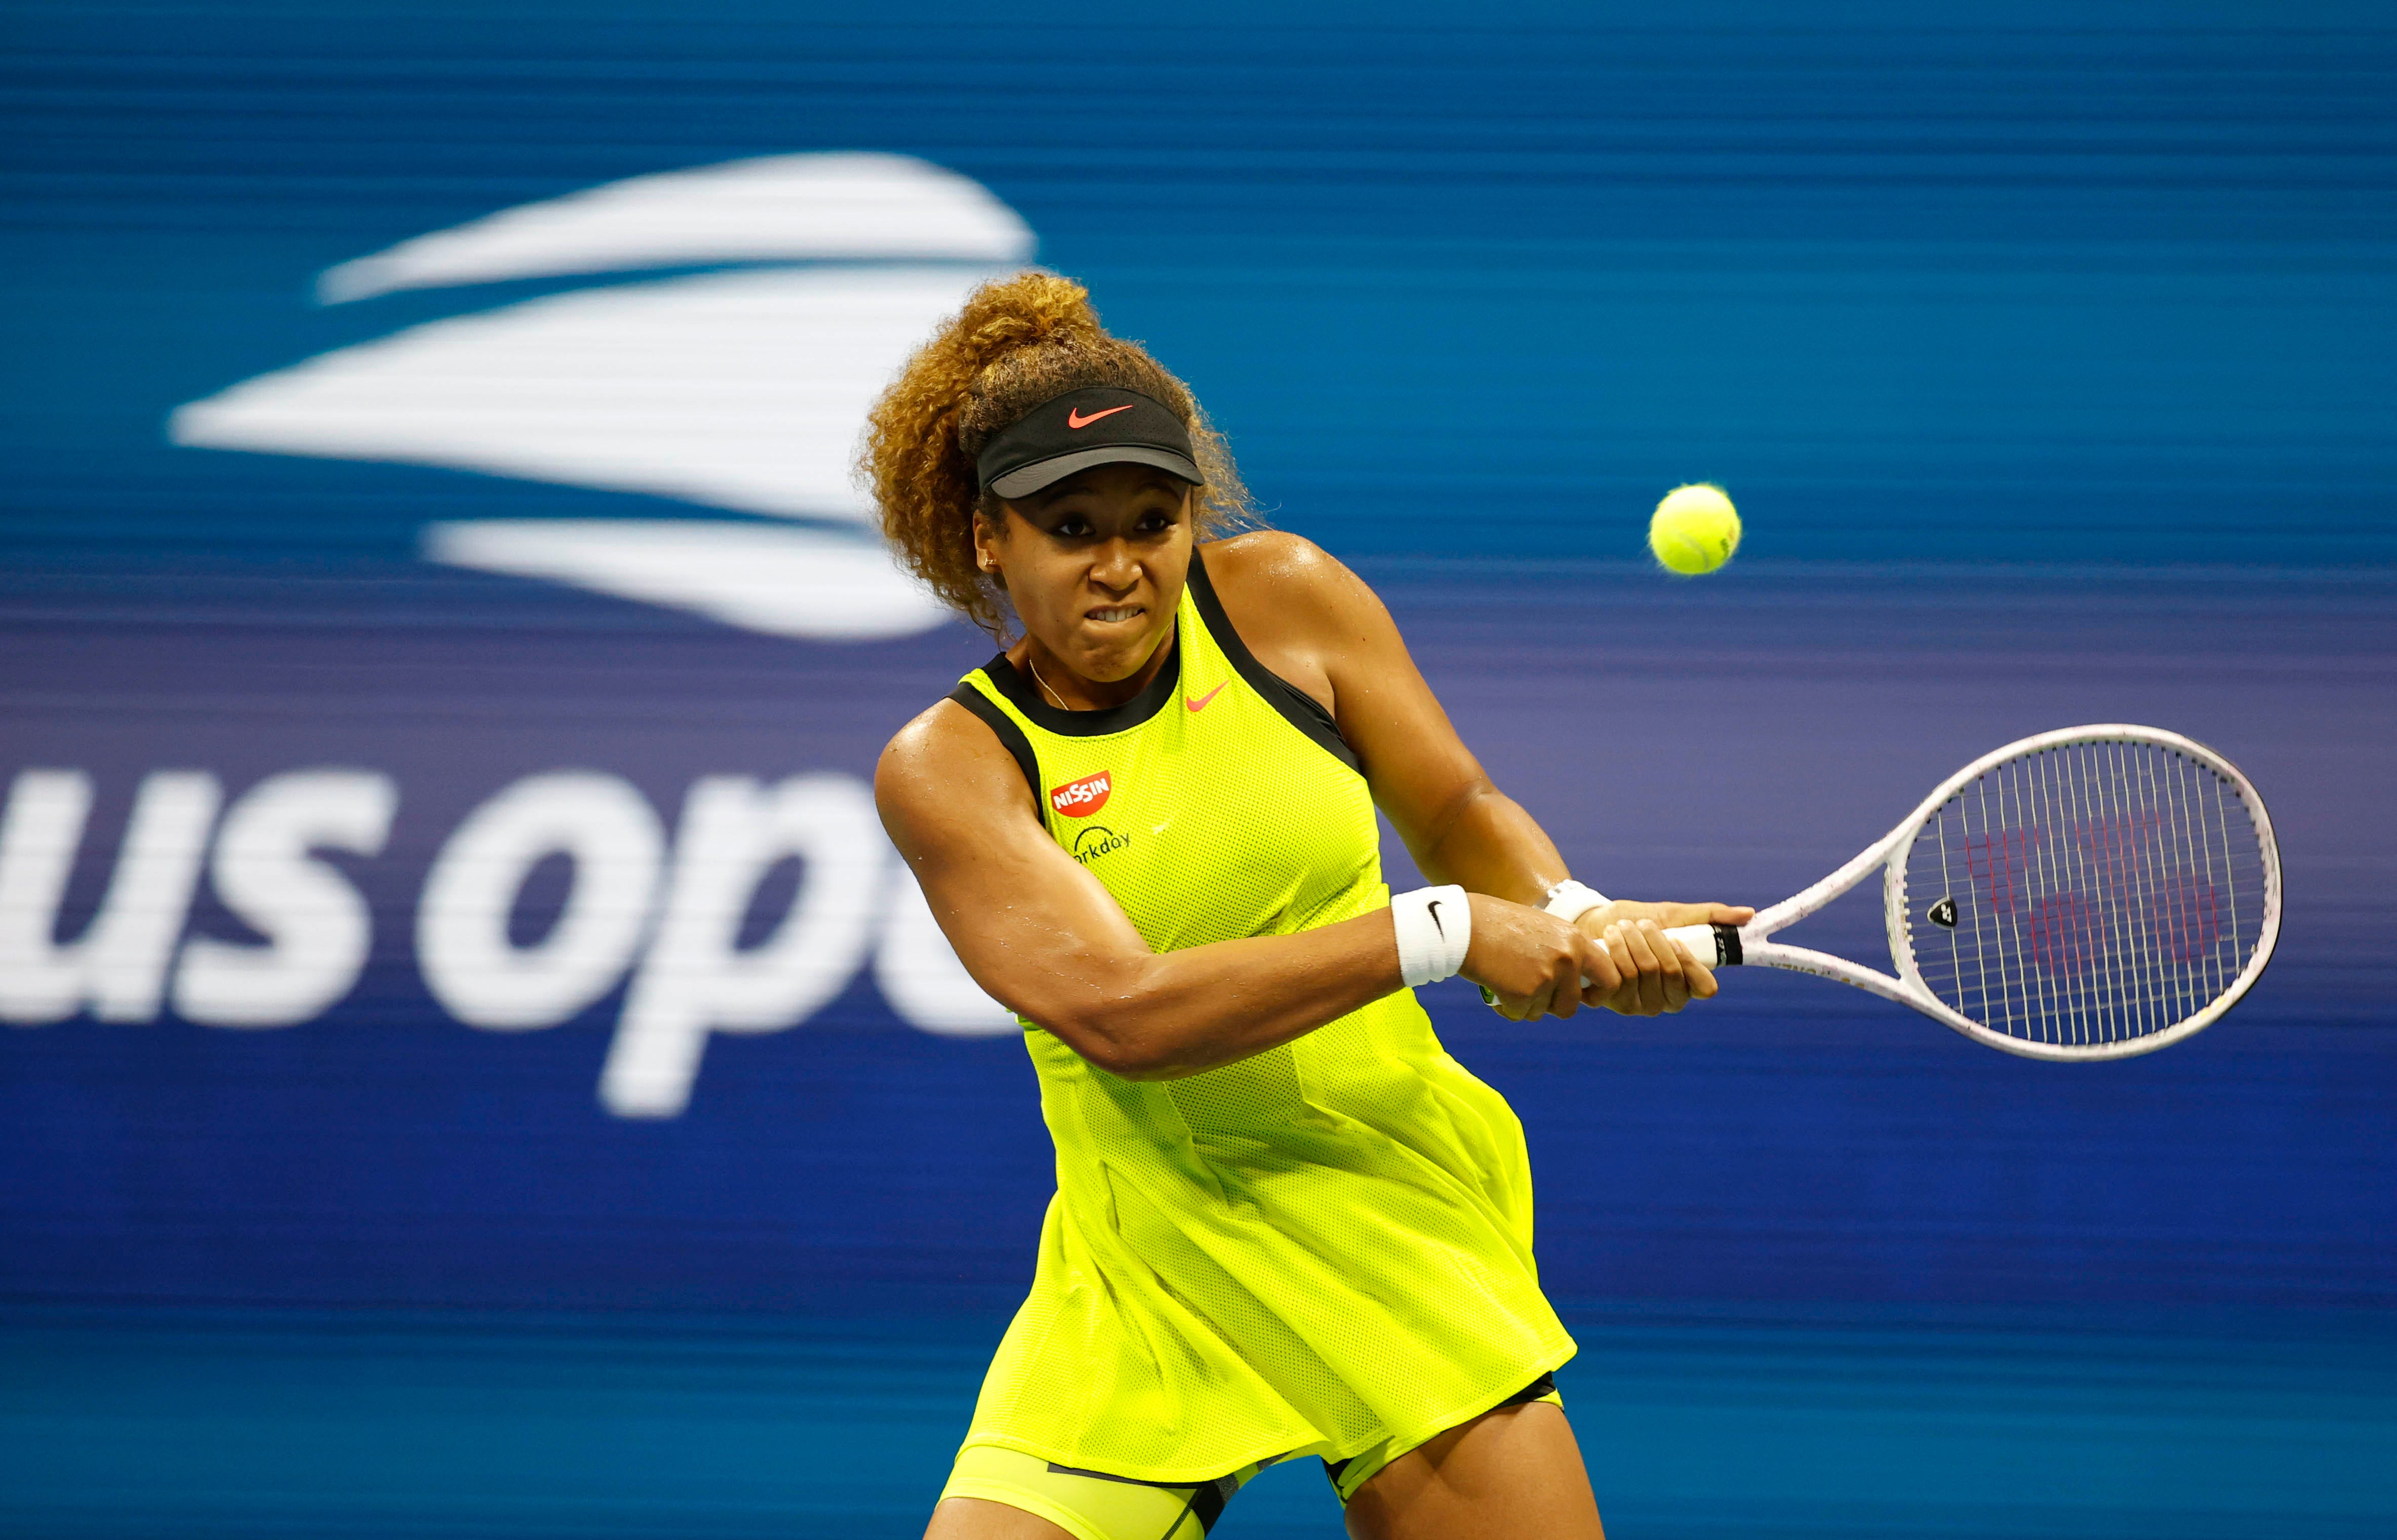 Naomi Osaka begins US Open title defense with first-round win over Marie Bouzkova